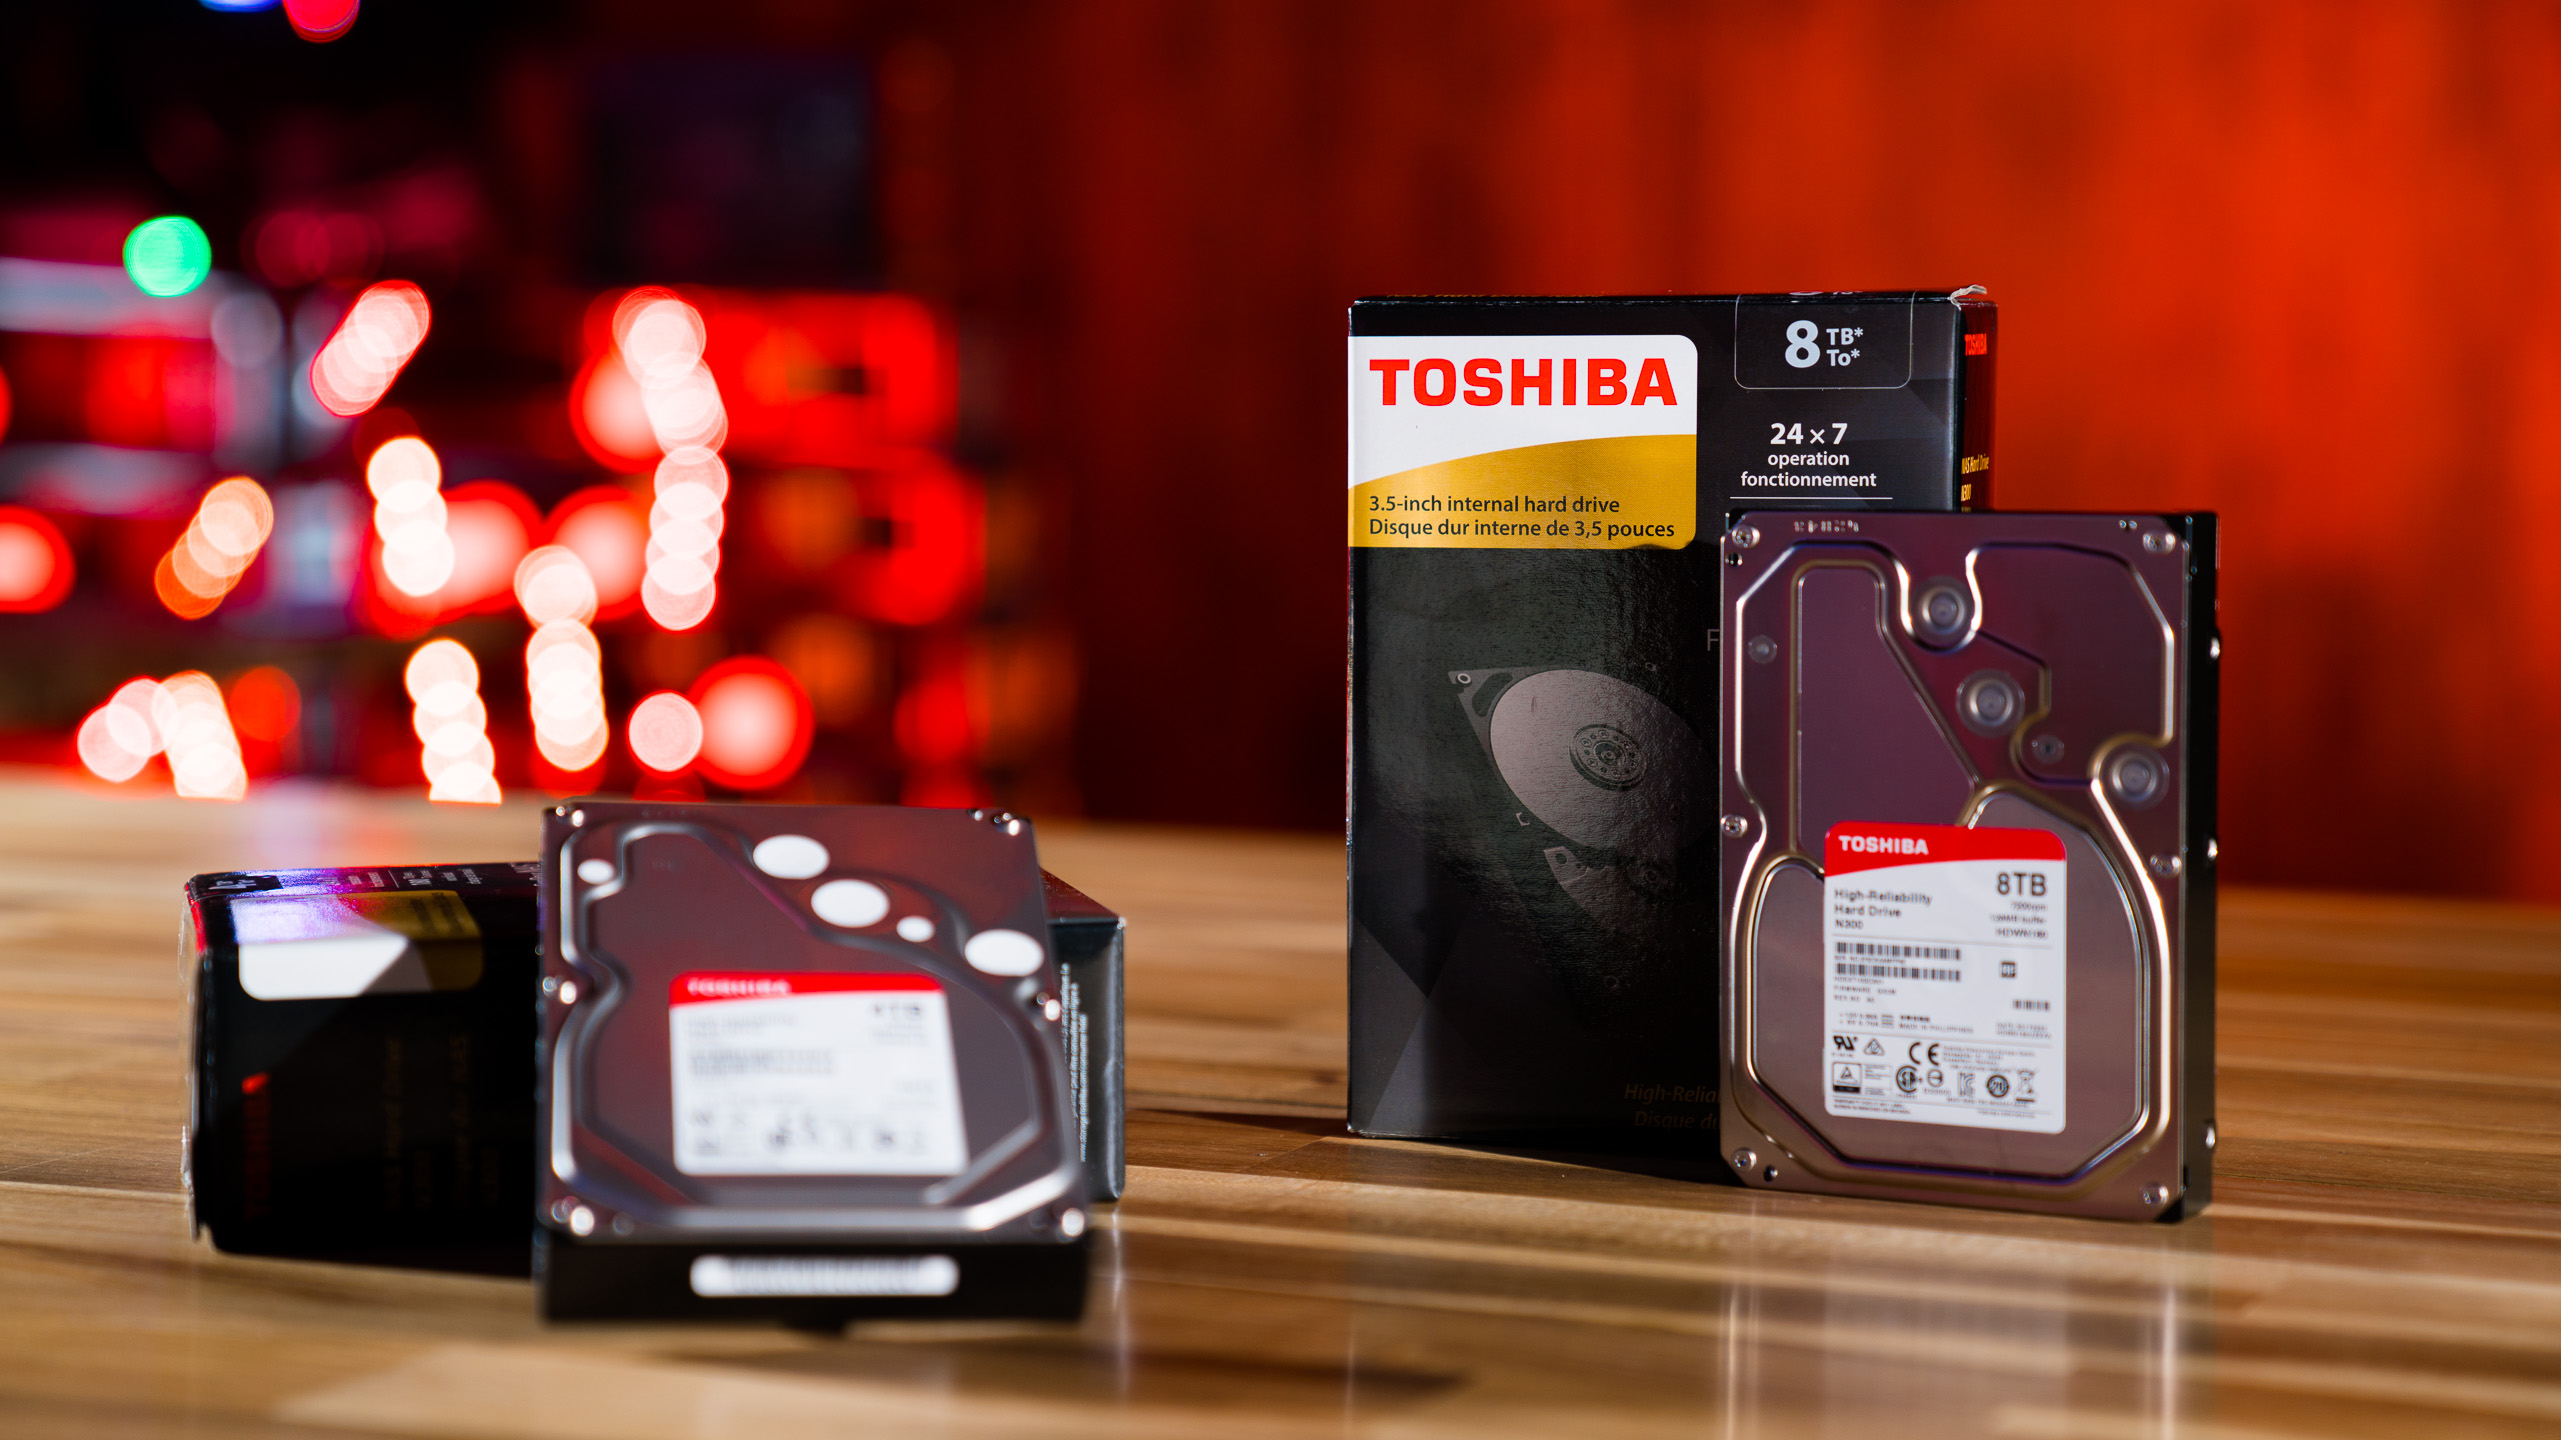 toshiba hard drive best storage for desktop PC